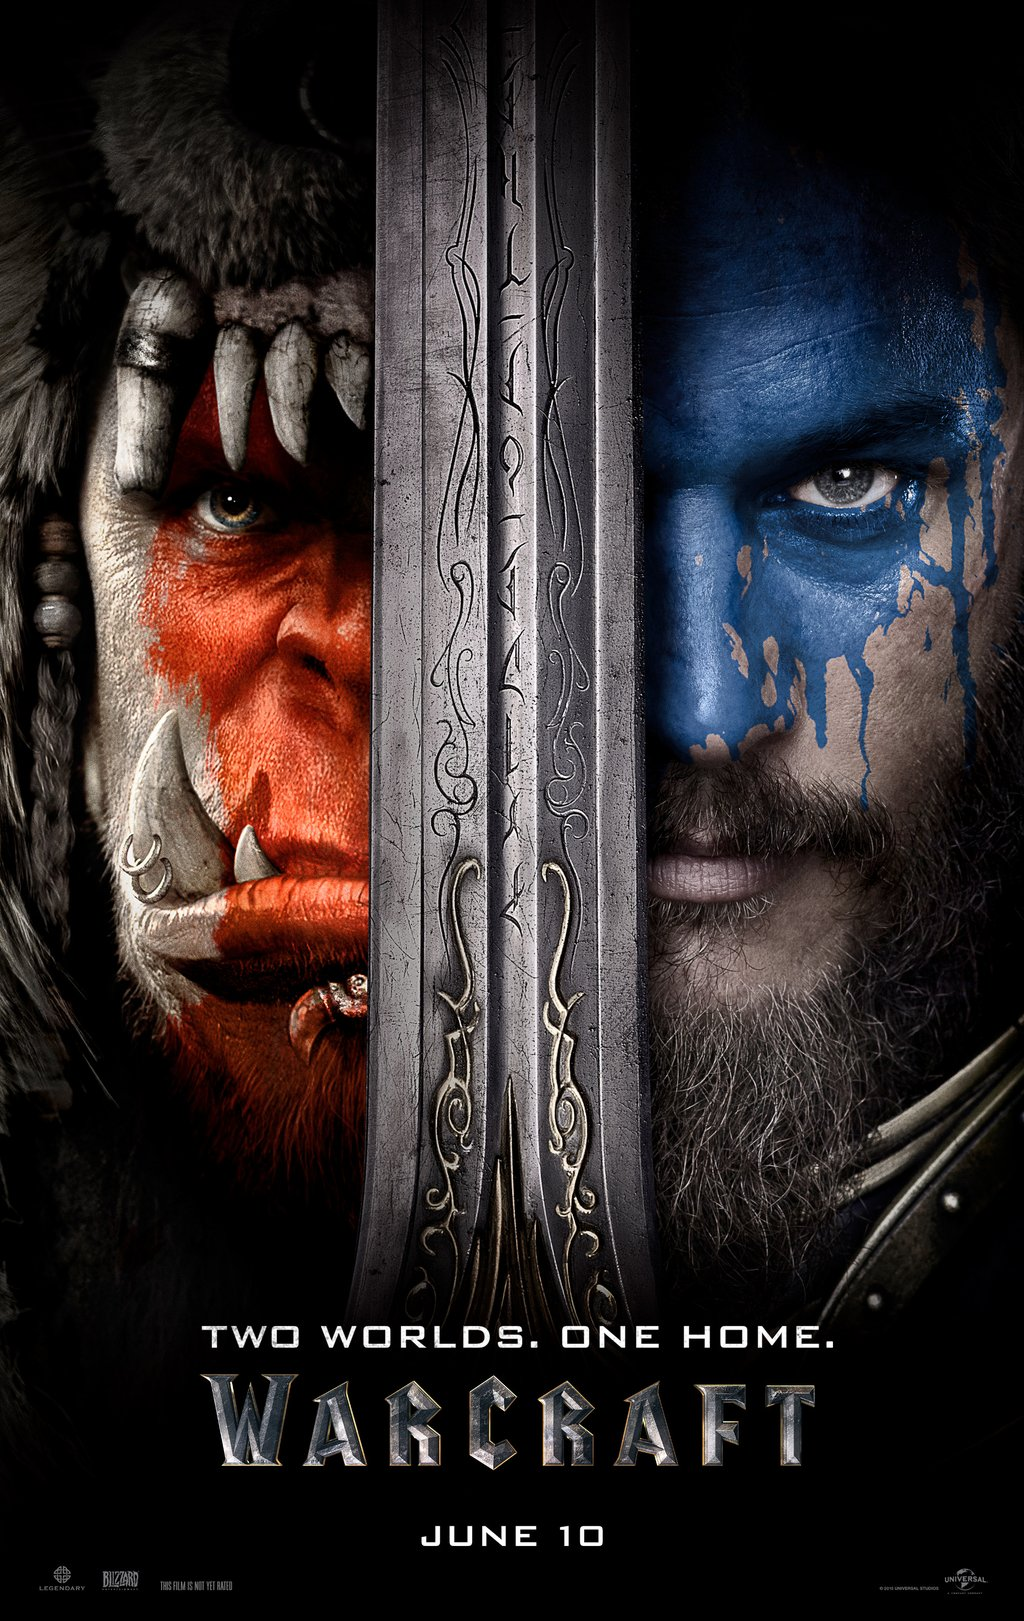 Warcraft-Film Poster 4